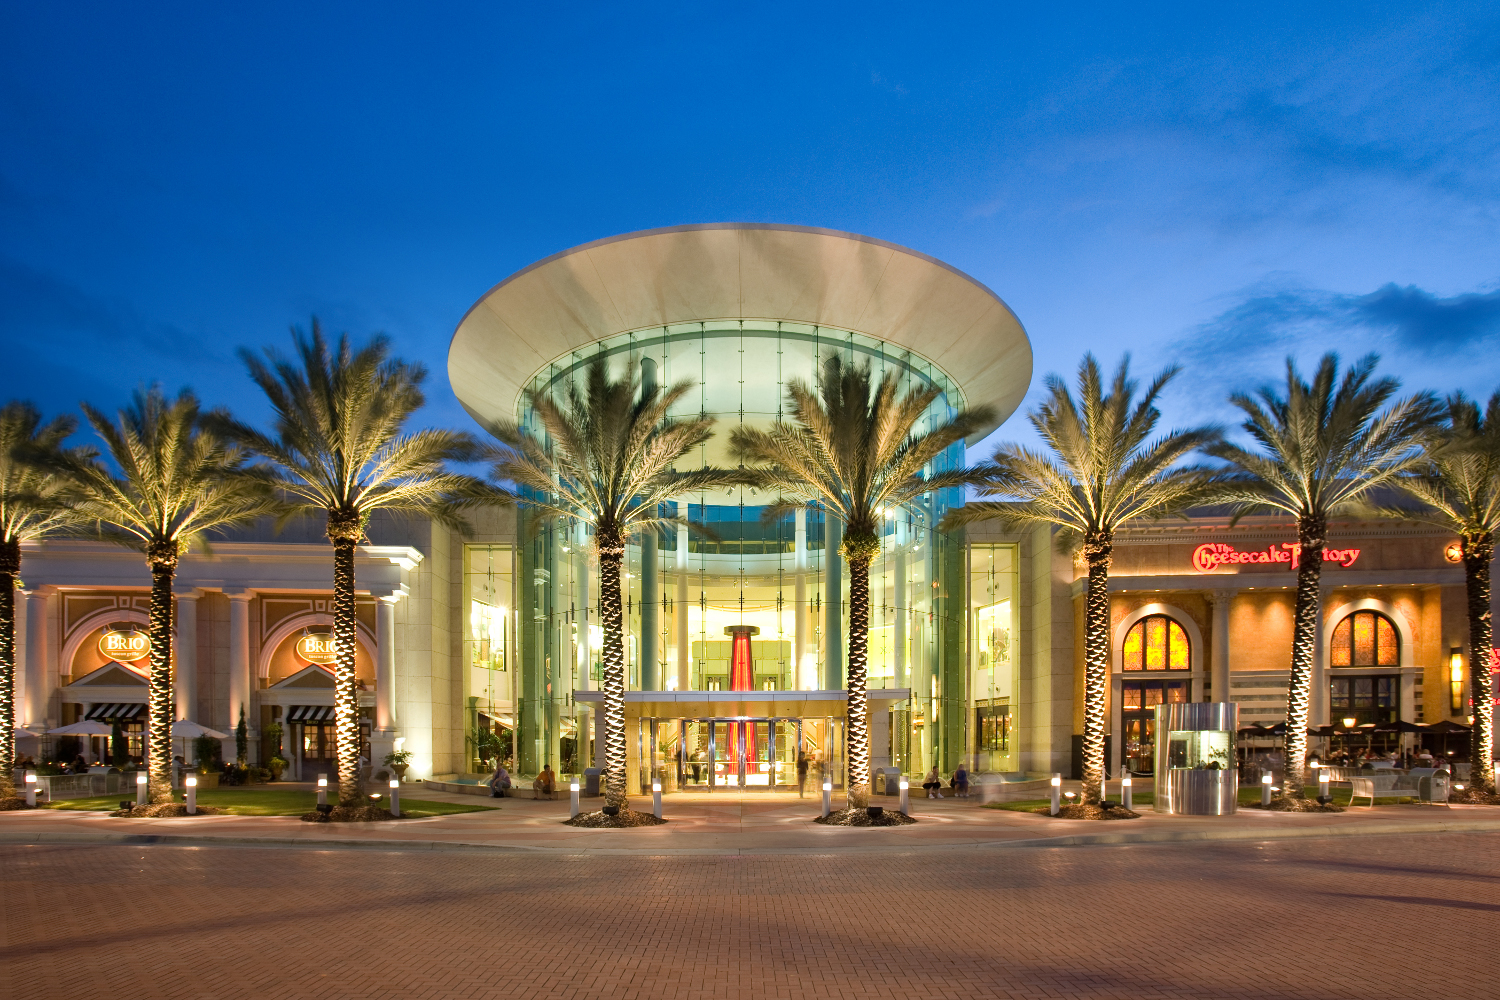 Regular Mall Hours, Monday - Saturday 10AM-9PM / Sunday 11AM-7PM.